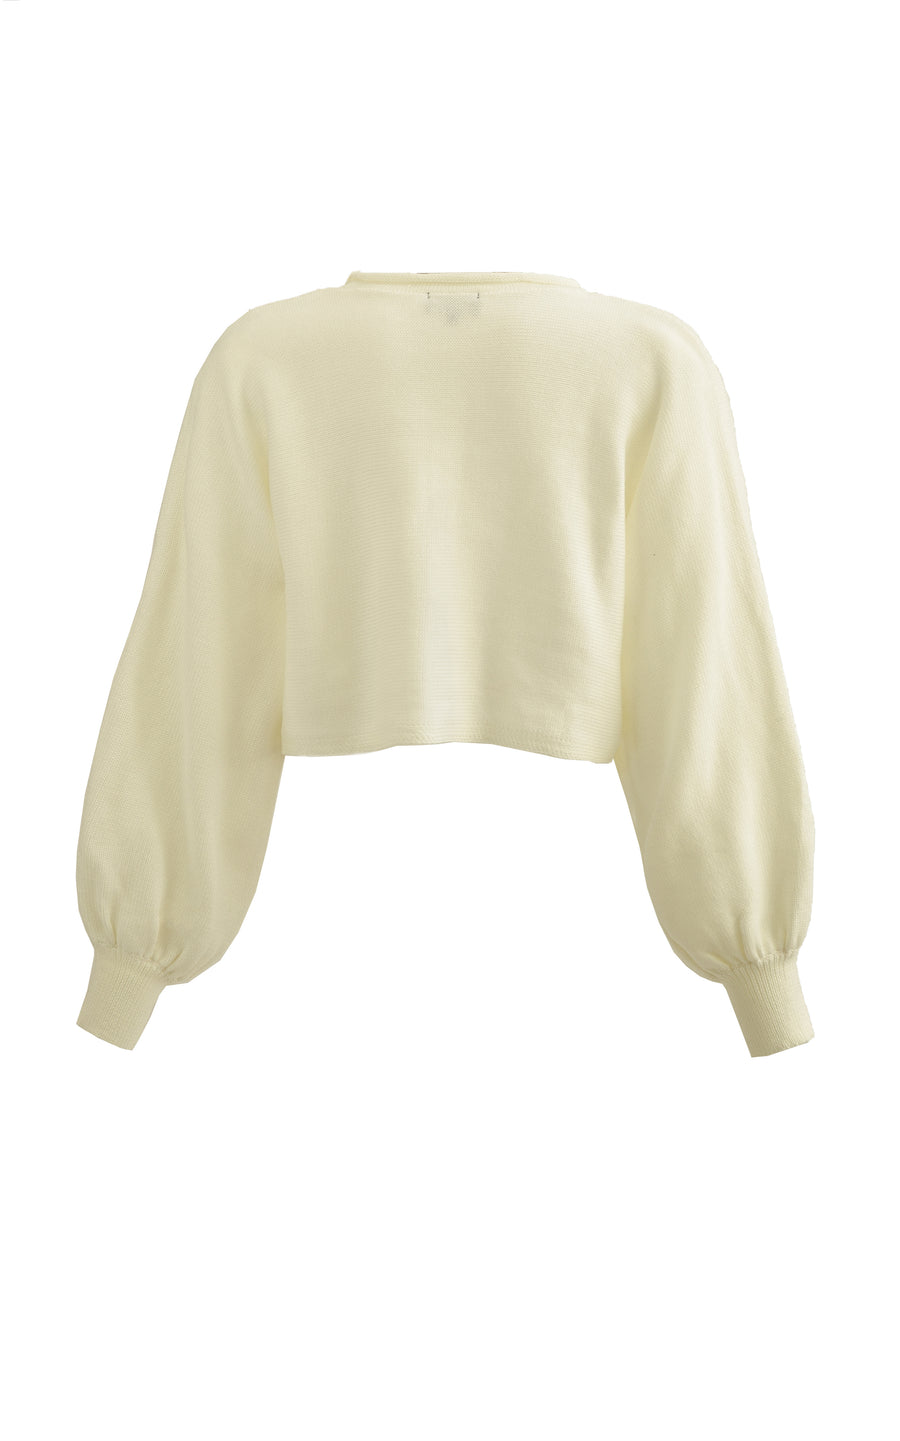 Wings Knit Sweater. Cream